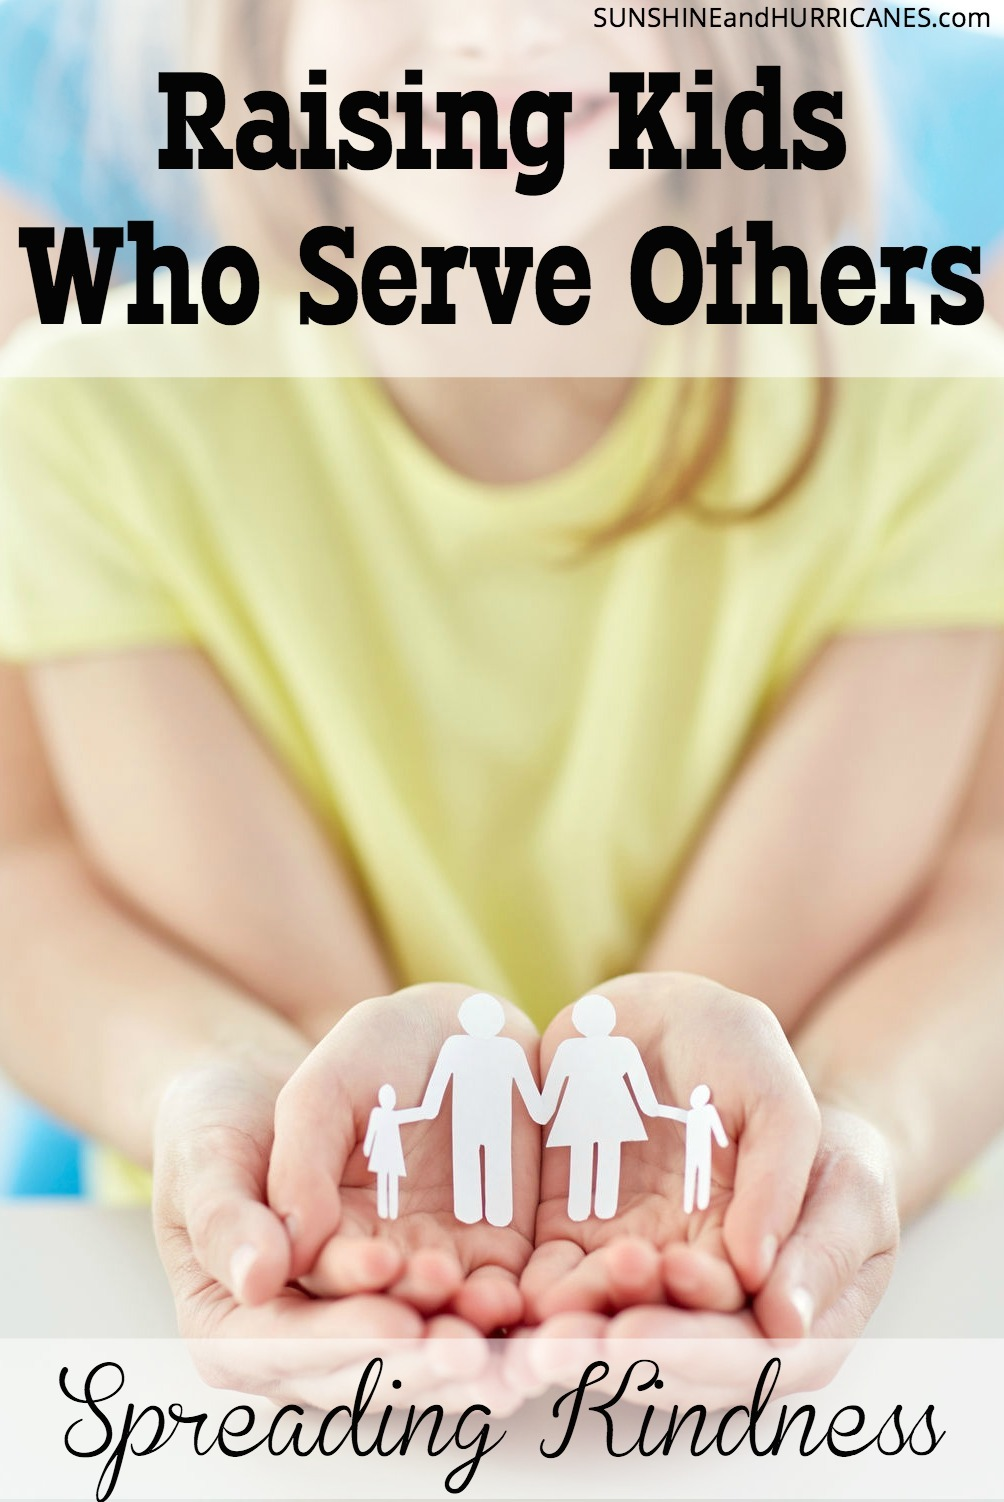 Do you want to raise children who are kind, compassionate and who are passionate about helping others? There are many ways to engage children in acts of service that will set habit for a lifetime. Our children have so much, they also need to know how to give back. Raising Kids Who Serve Others. Spreading Kindness. SunshineandHurricanes.com